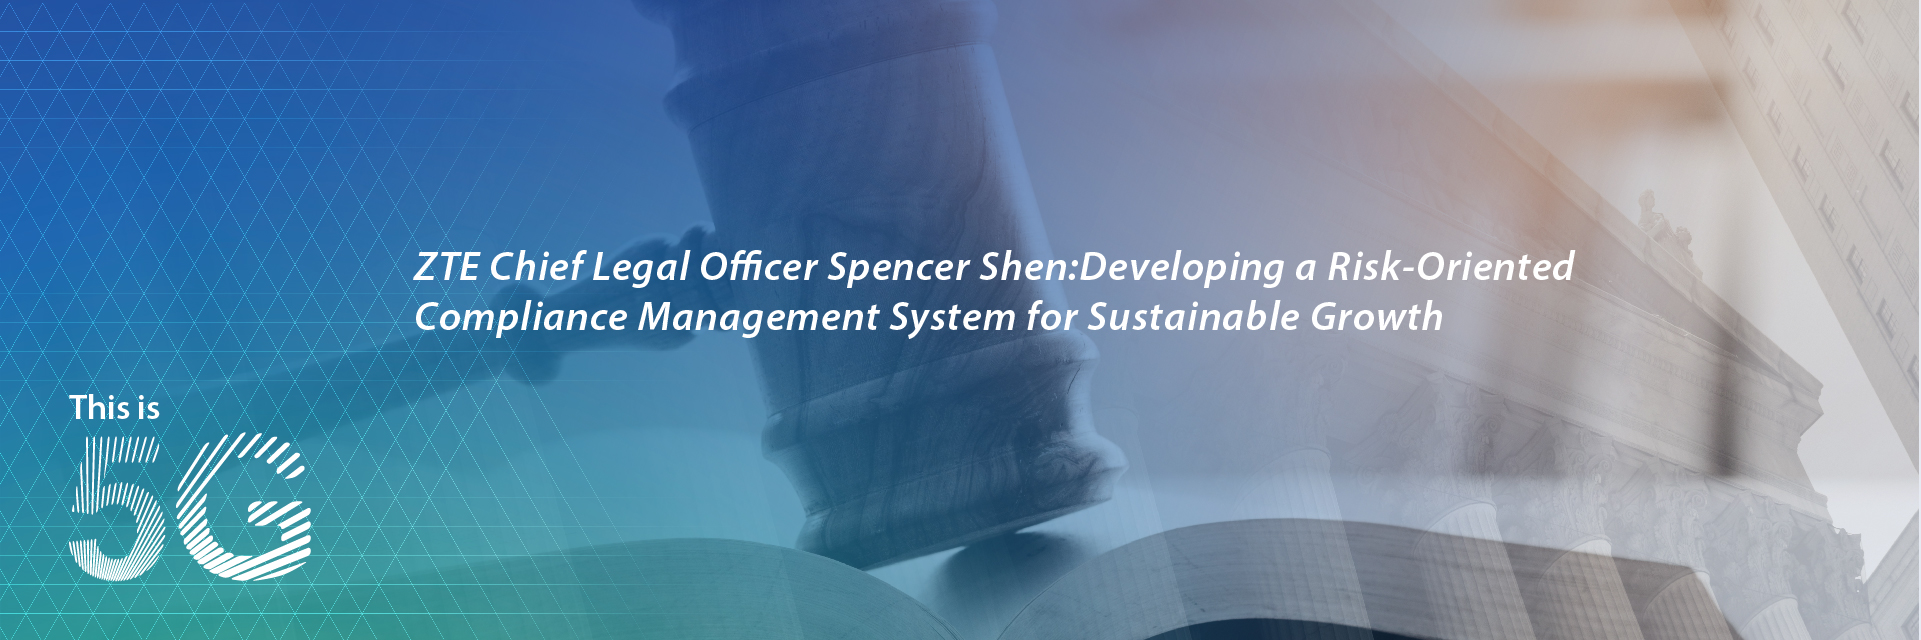 ZTE Chief Legal Officer Spencer Shen:Developing a Risk-Oriented Compliance Management System for Sustainable Growth